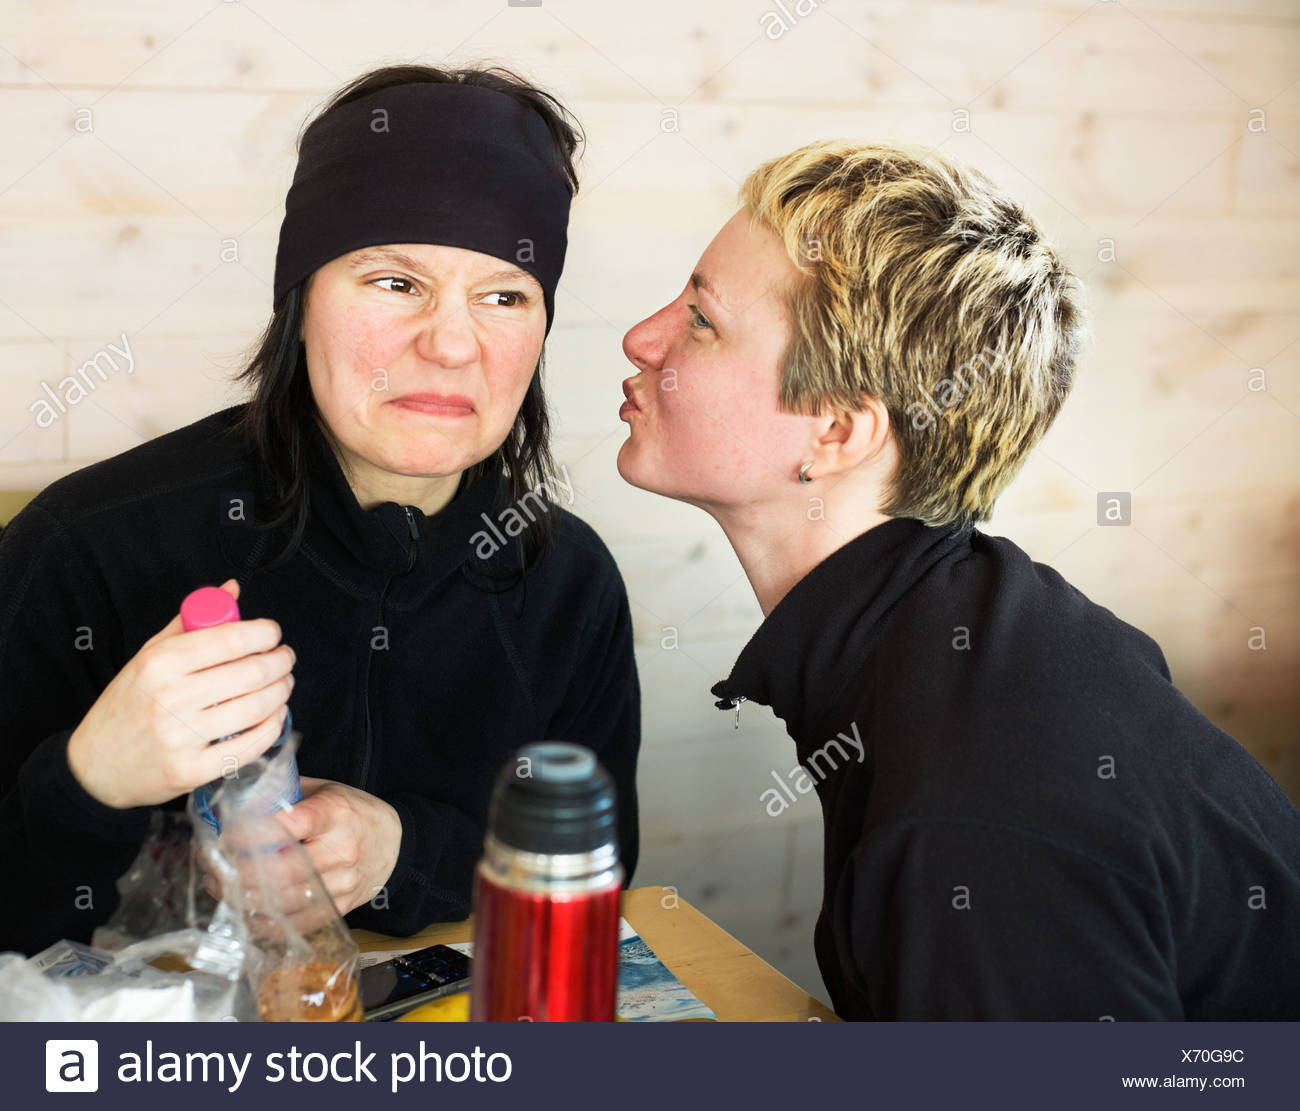 One woman faking a kiss one woman making a face Sweden. - Stock Image